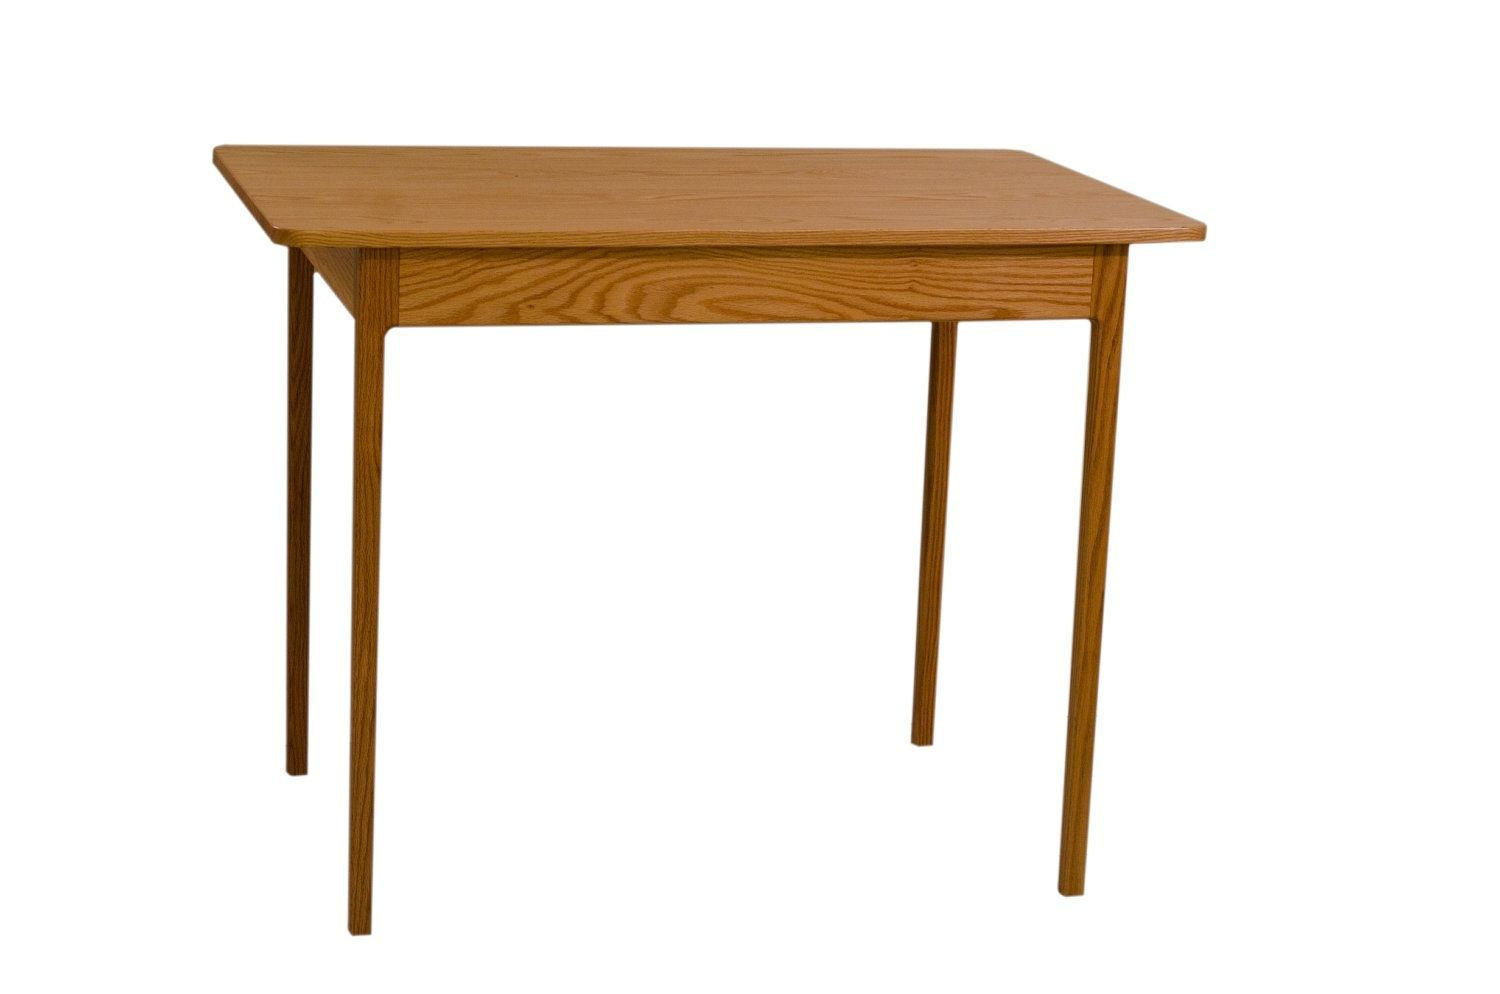 Custom made mid century danish modern style dining table for New style dining table